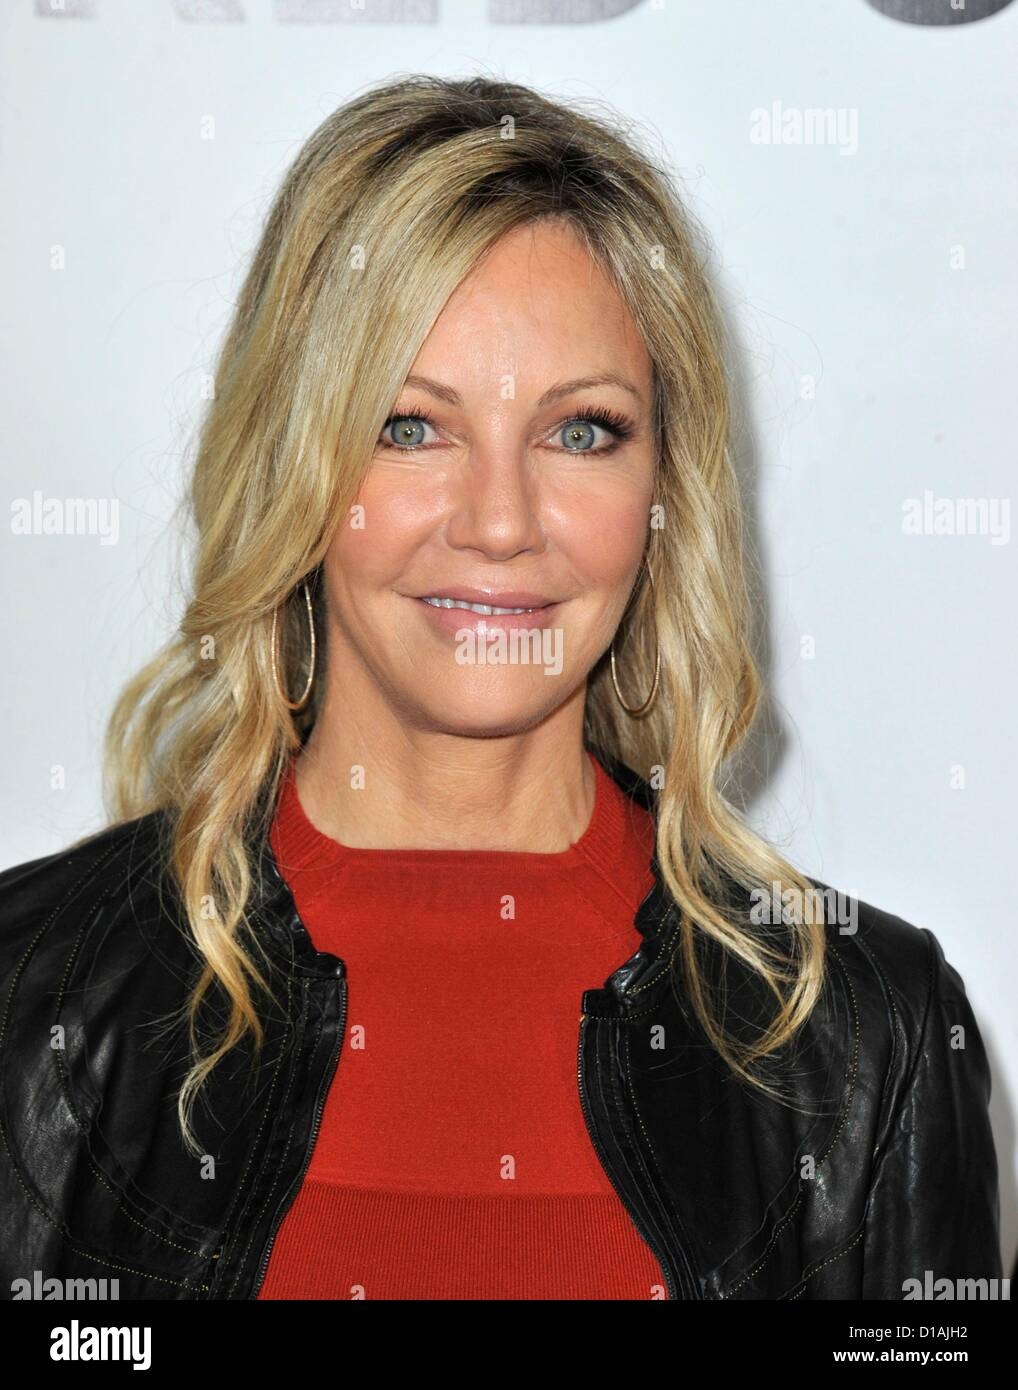 Heather Locklear Arrivals 40 Premiere Stock Photos   Heather     Heather Locklear at arrivals for THIS IS 40 Premiere  Grauman s Chinese  Theatre  Los Angeles